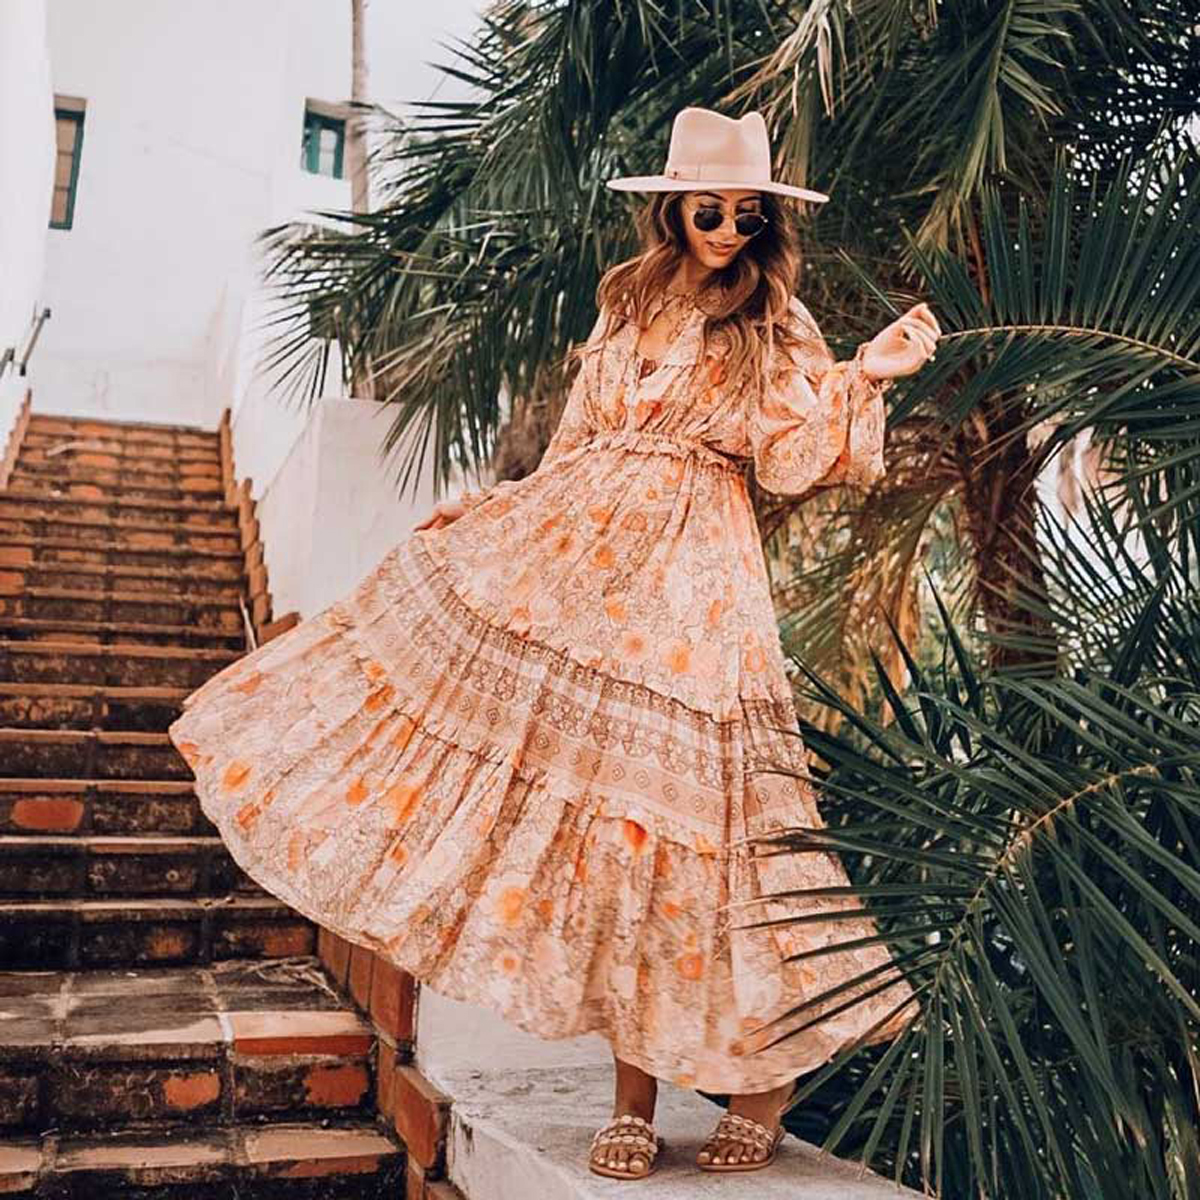 Jastie Boho Chic Frill Long Sleeve Women Dress V-Neck Floral Print Dresses Gypsy 2019 Spring Summer Dress Casual Beach Dresses